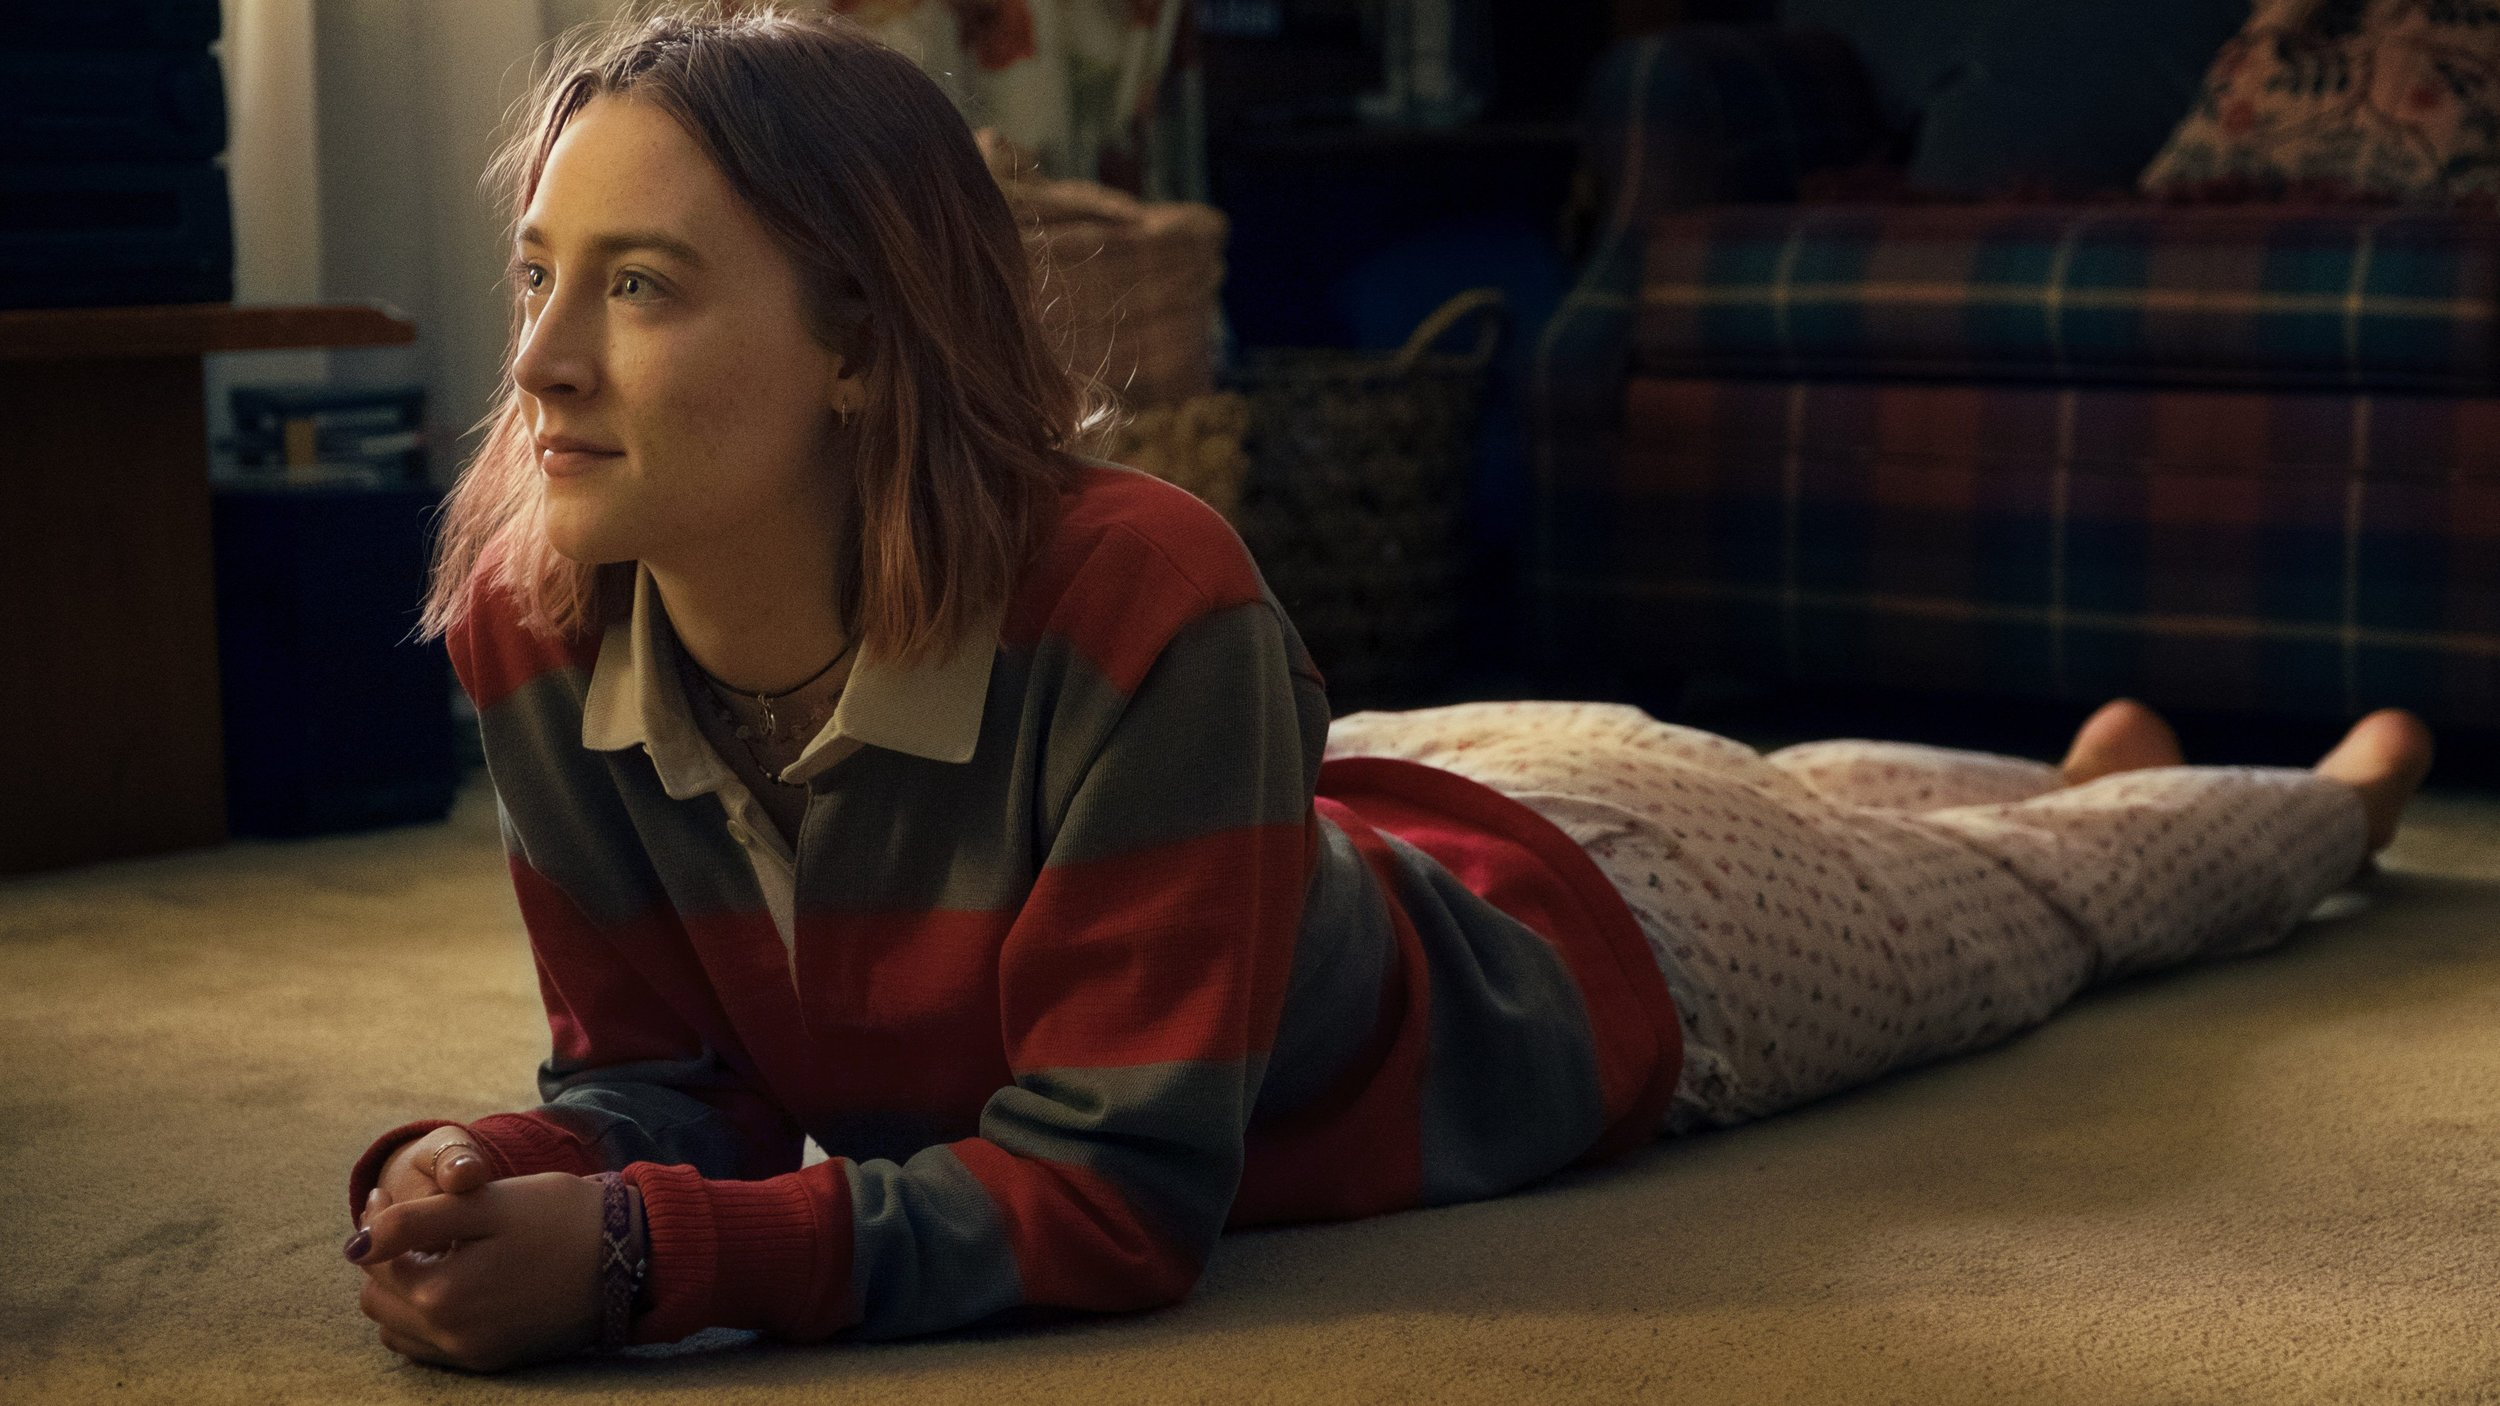 Saoirse Ronan turns in another charmer of a performance